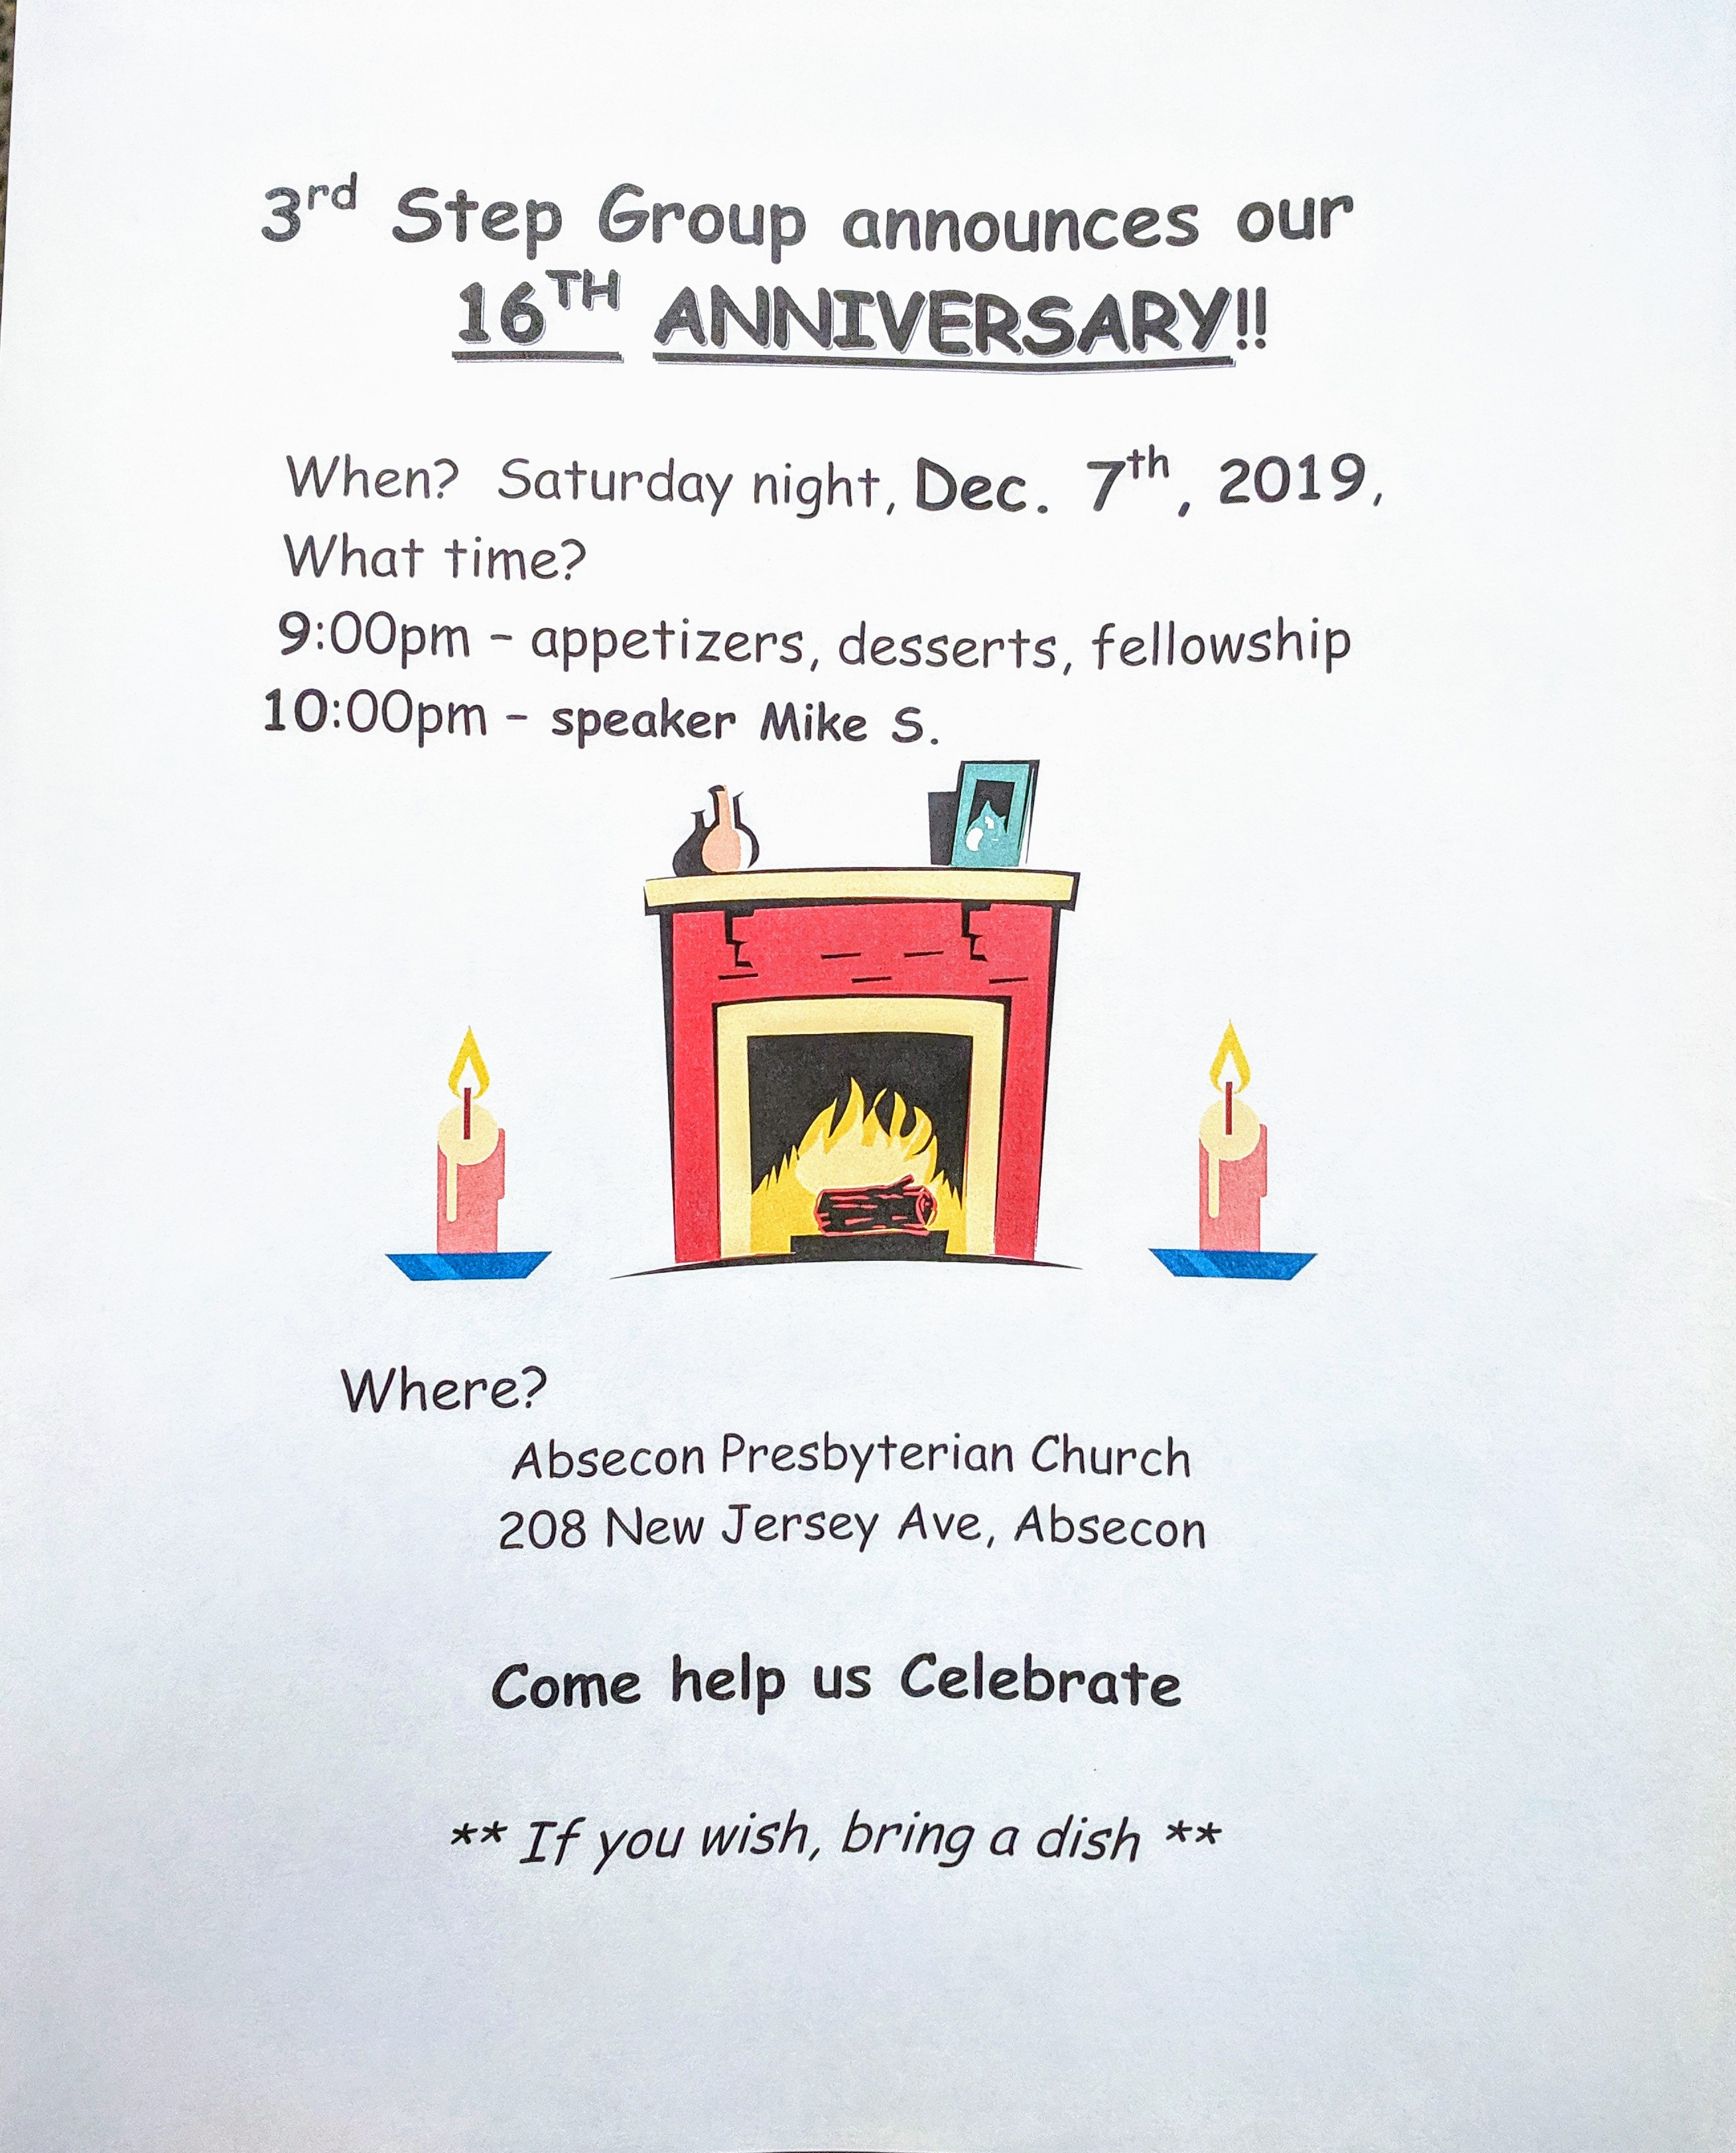 12.07.19 Absecon 3rd Step Group 16th Anniversary